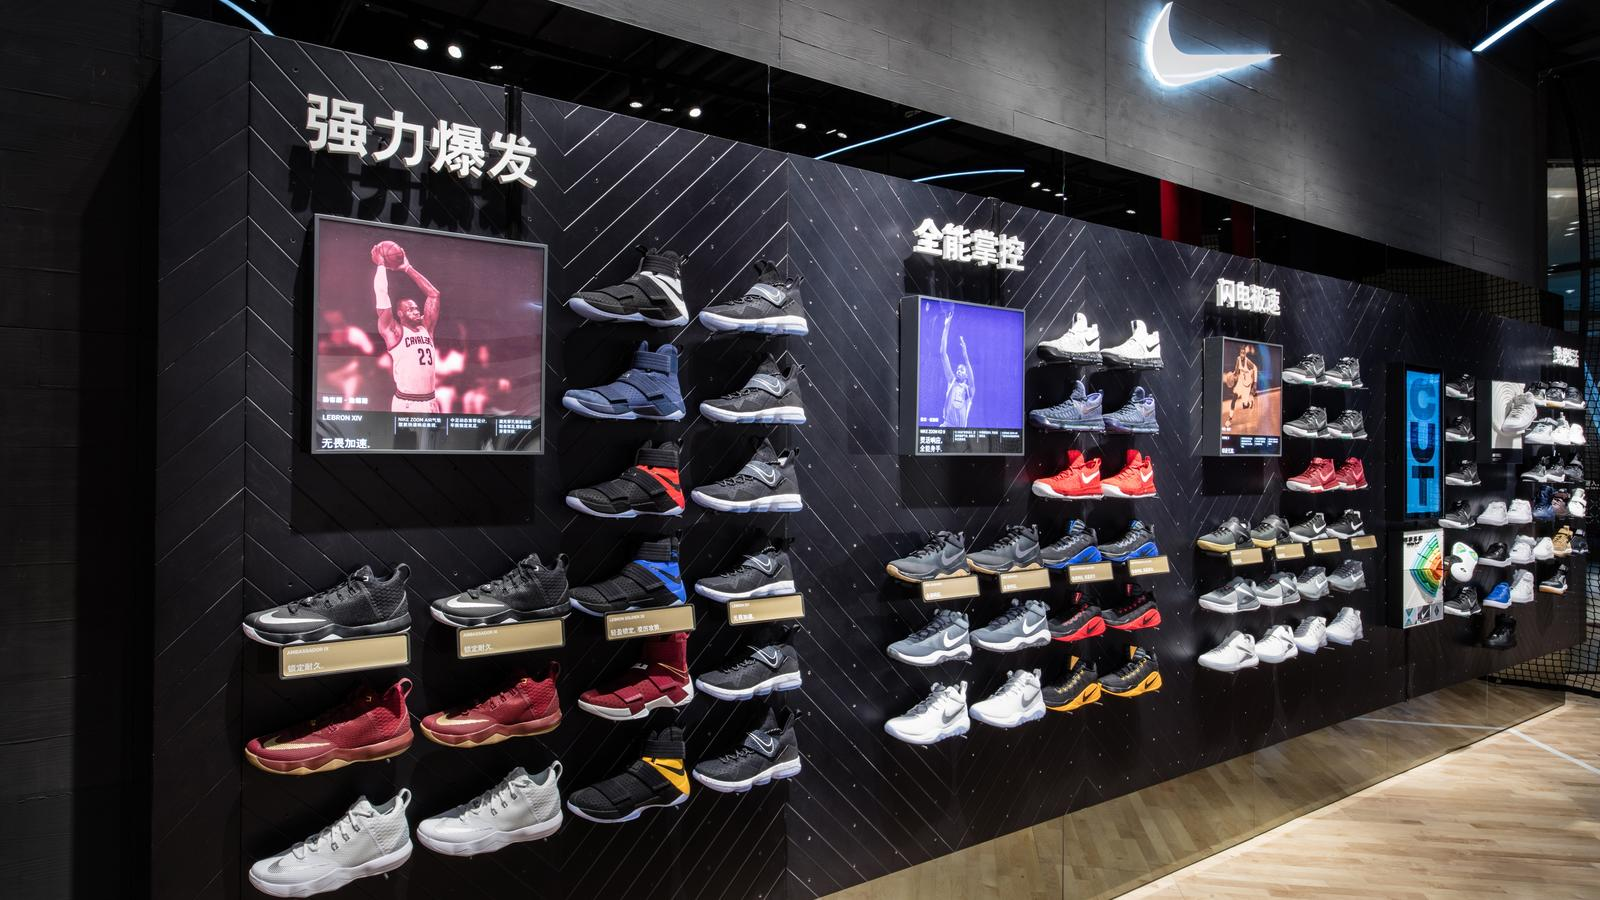 Nike Basketball Footwear Wall: The Nike & Jordan Basketball Experience Store  offers the latest in Nike Basketball and Nike Sportswear product on the  first ...